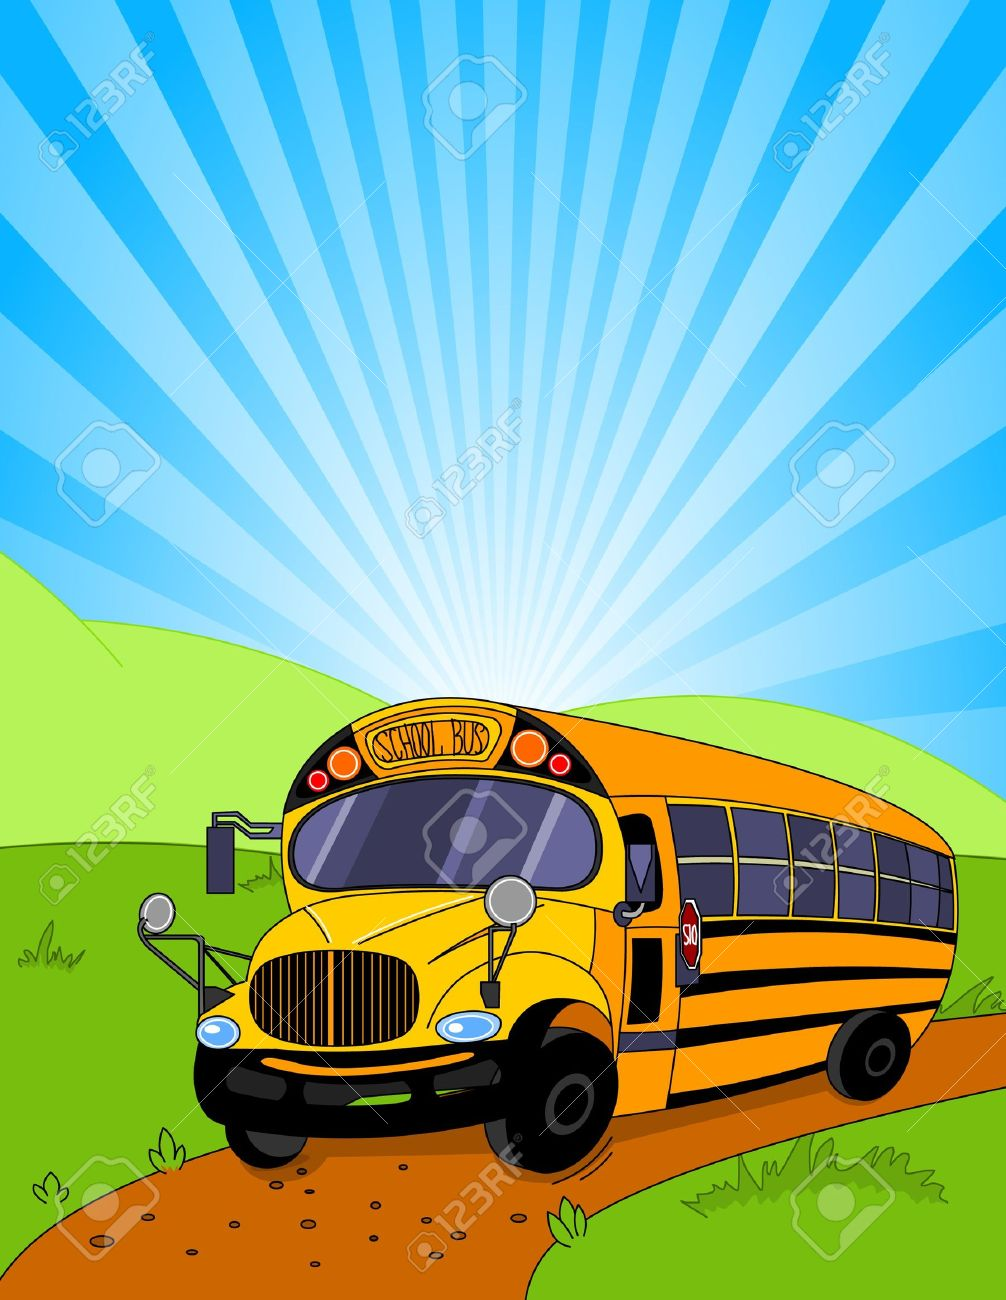 Colorful background of a School Bus Stock Vector - 10102978